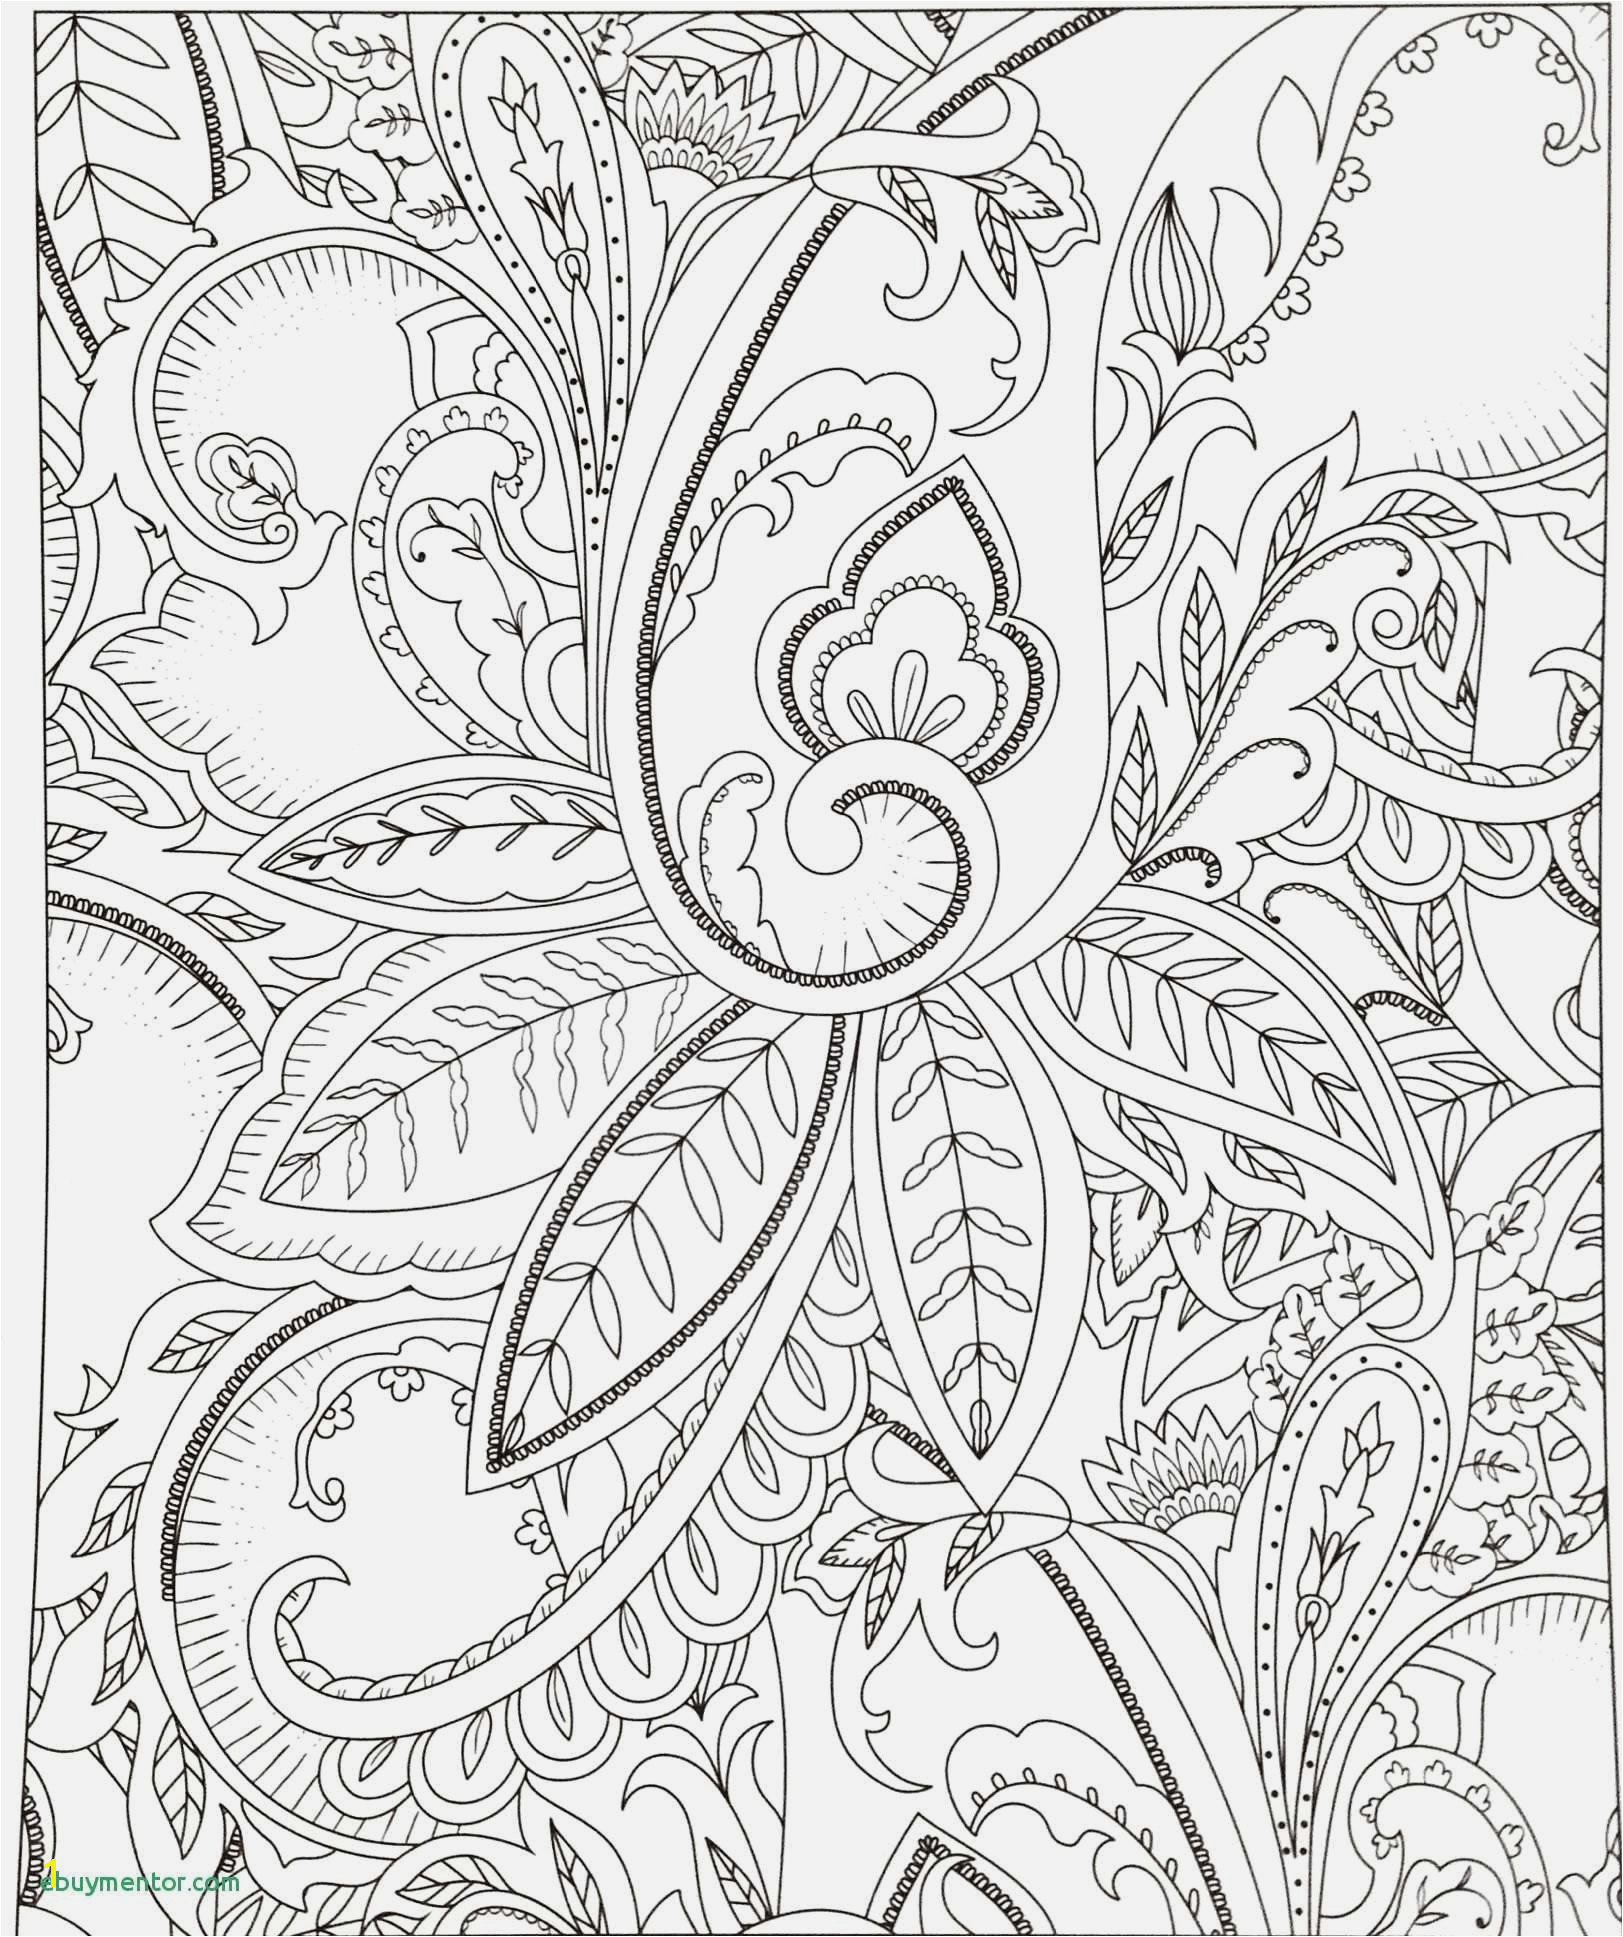 Printable Nativity Coloring Pages Pferde Ausmalbilder Beispielbilder Färben Christmas Coloring Pages